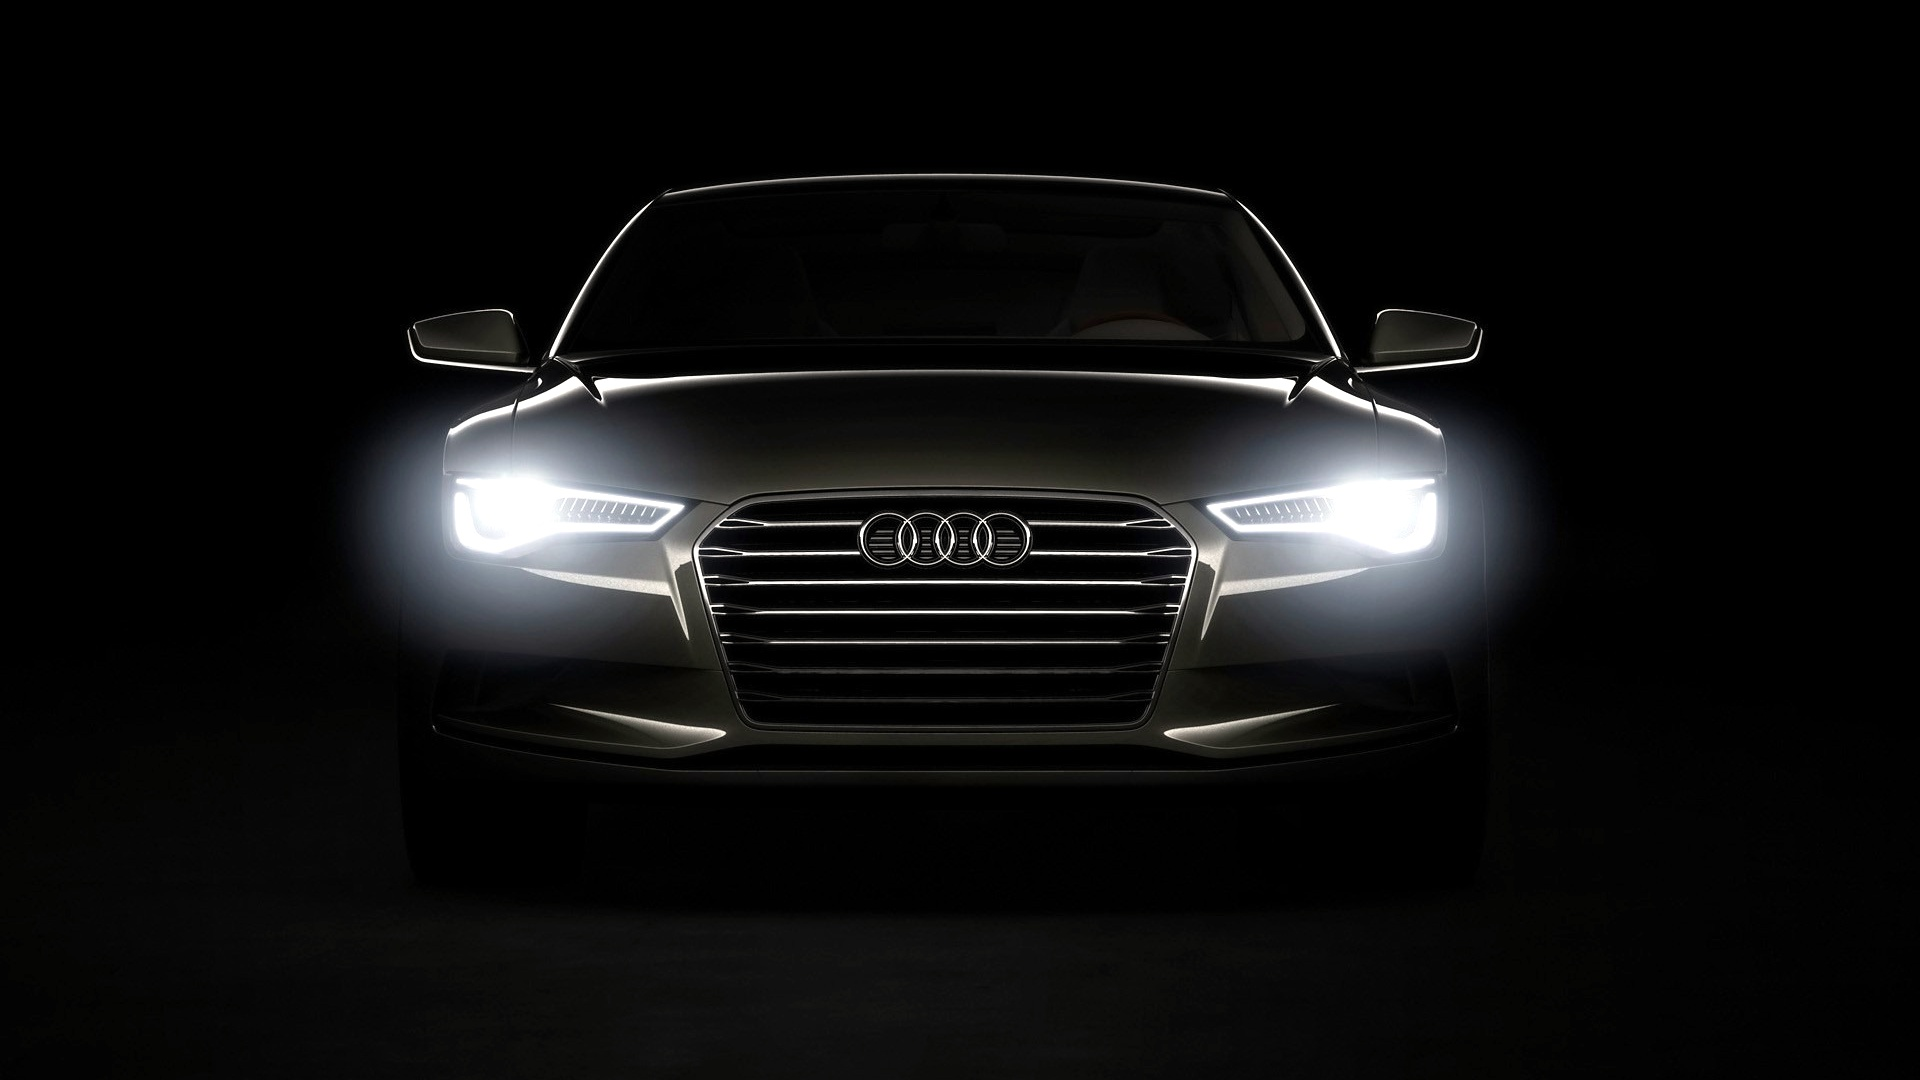 Audi Hd wallpapers backgrounds your desktop Audi cars wallpapers are 1920x1080